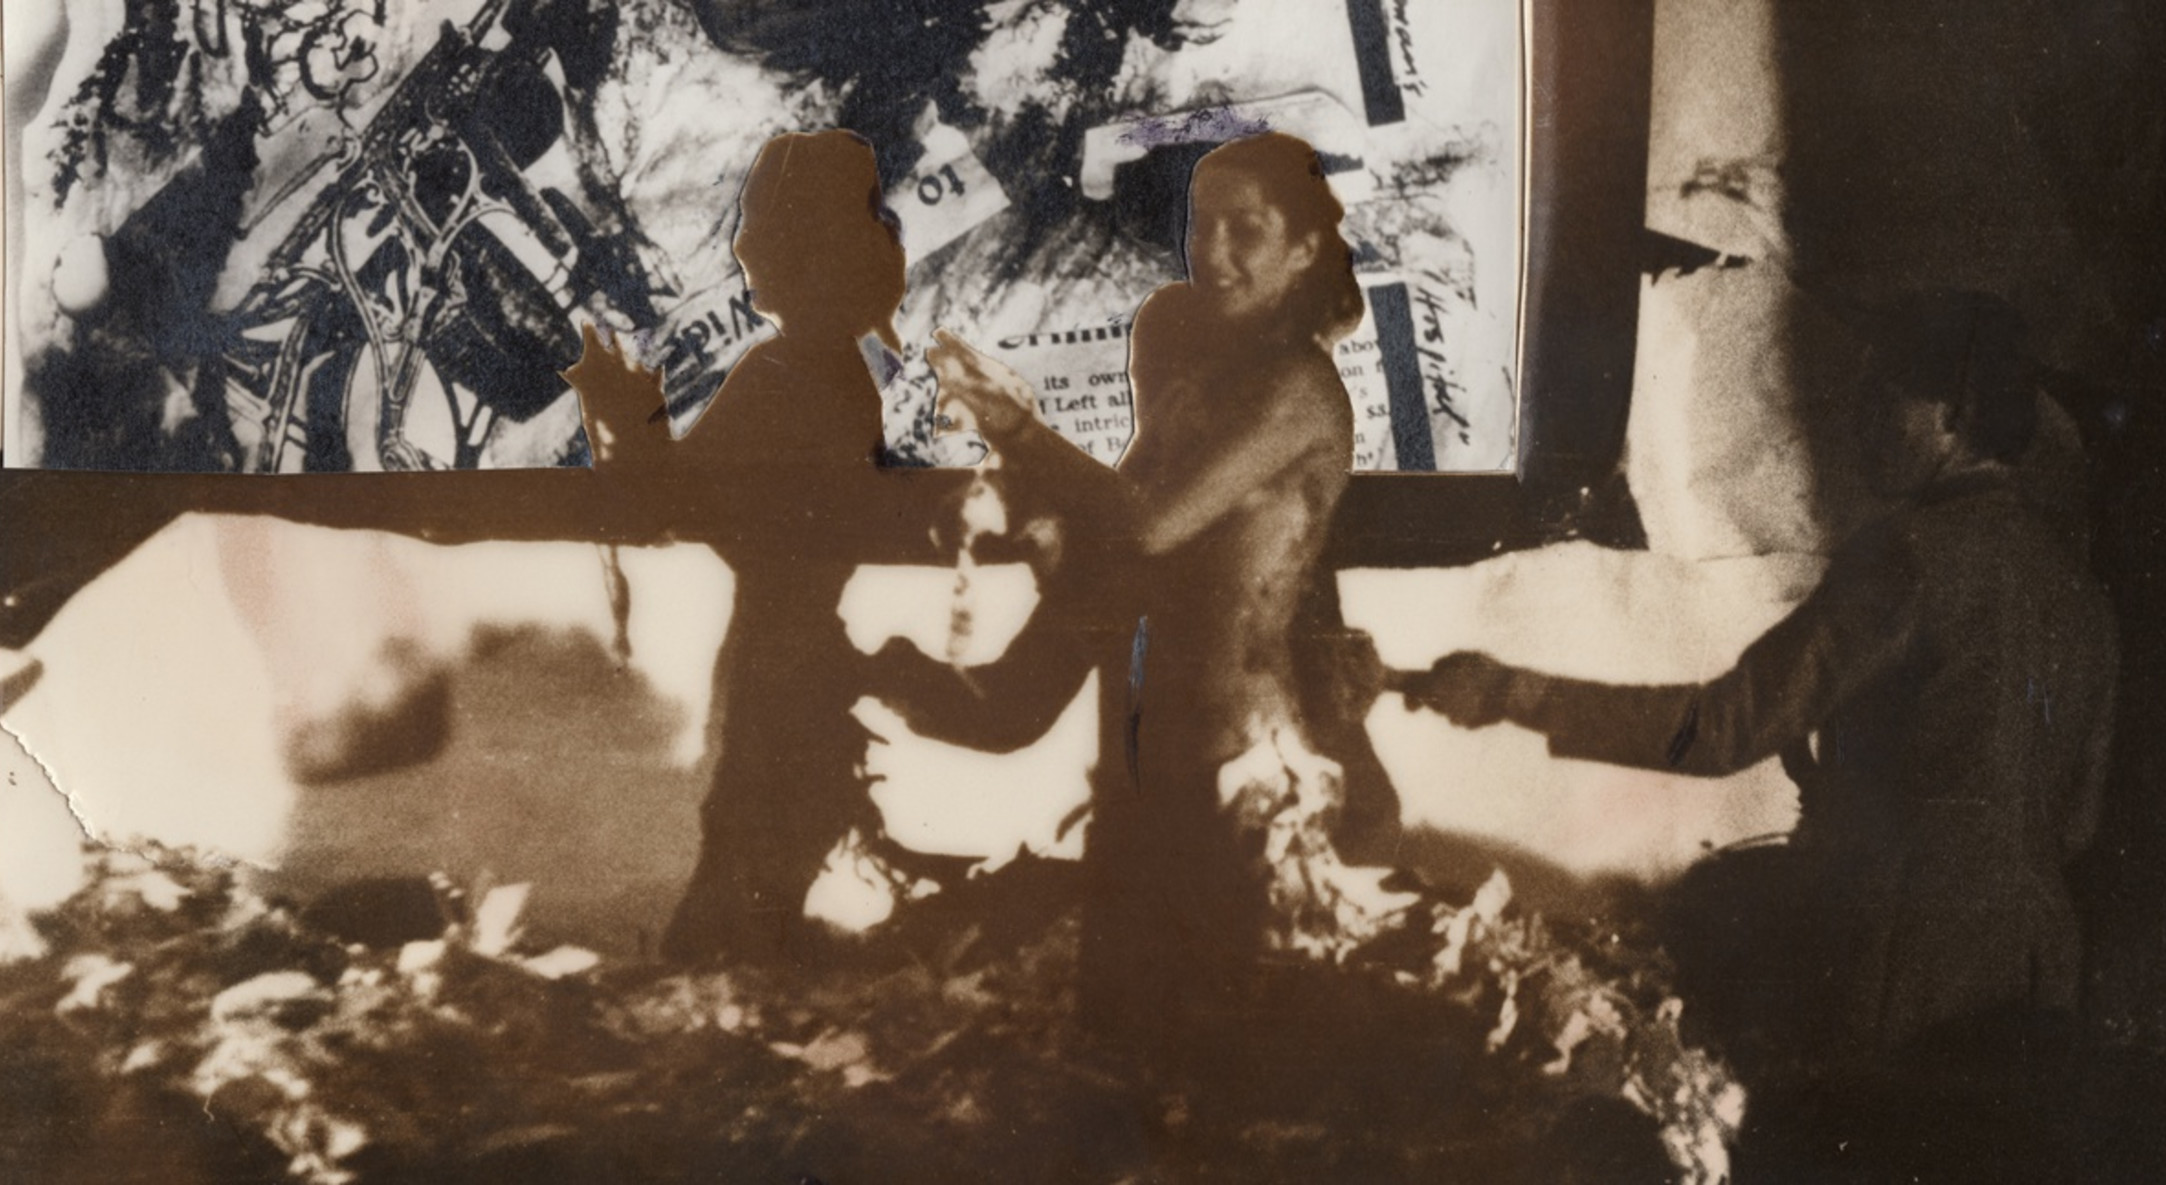 Detail of Carolee Schneemann, Naked Action Lecture 1, 1968, silver gelatin print collage, 20.3 x 25 cm, 8 x 9 7/8 in